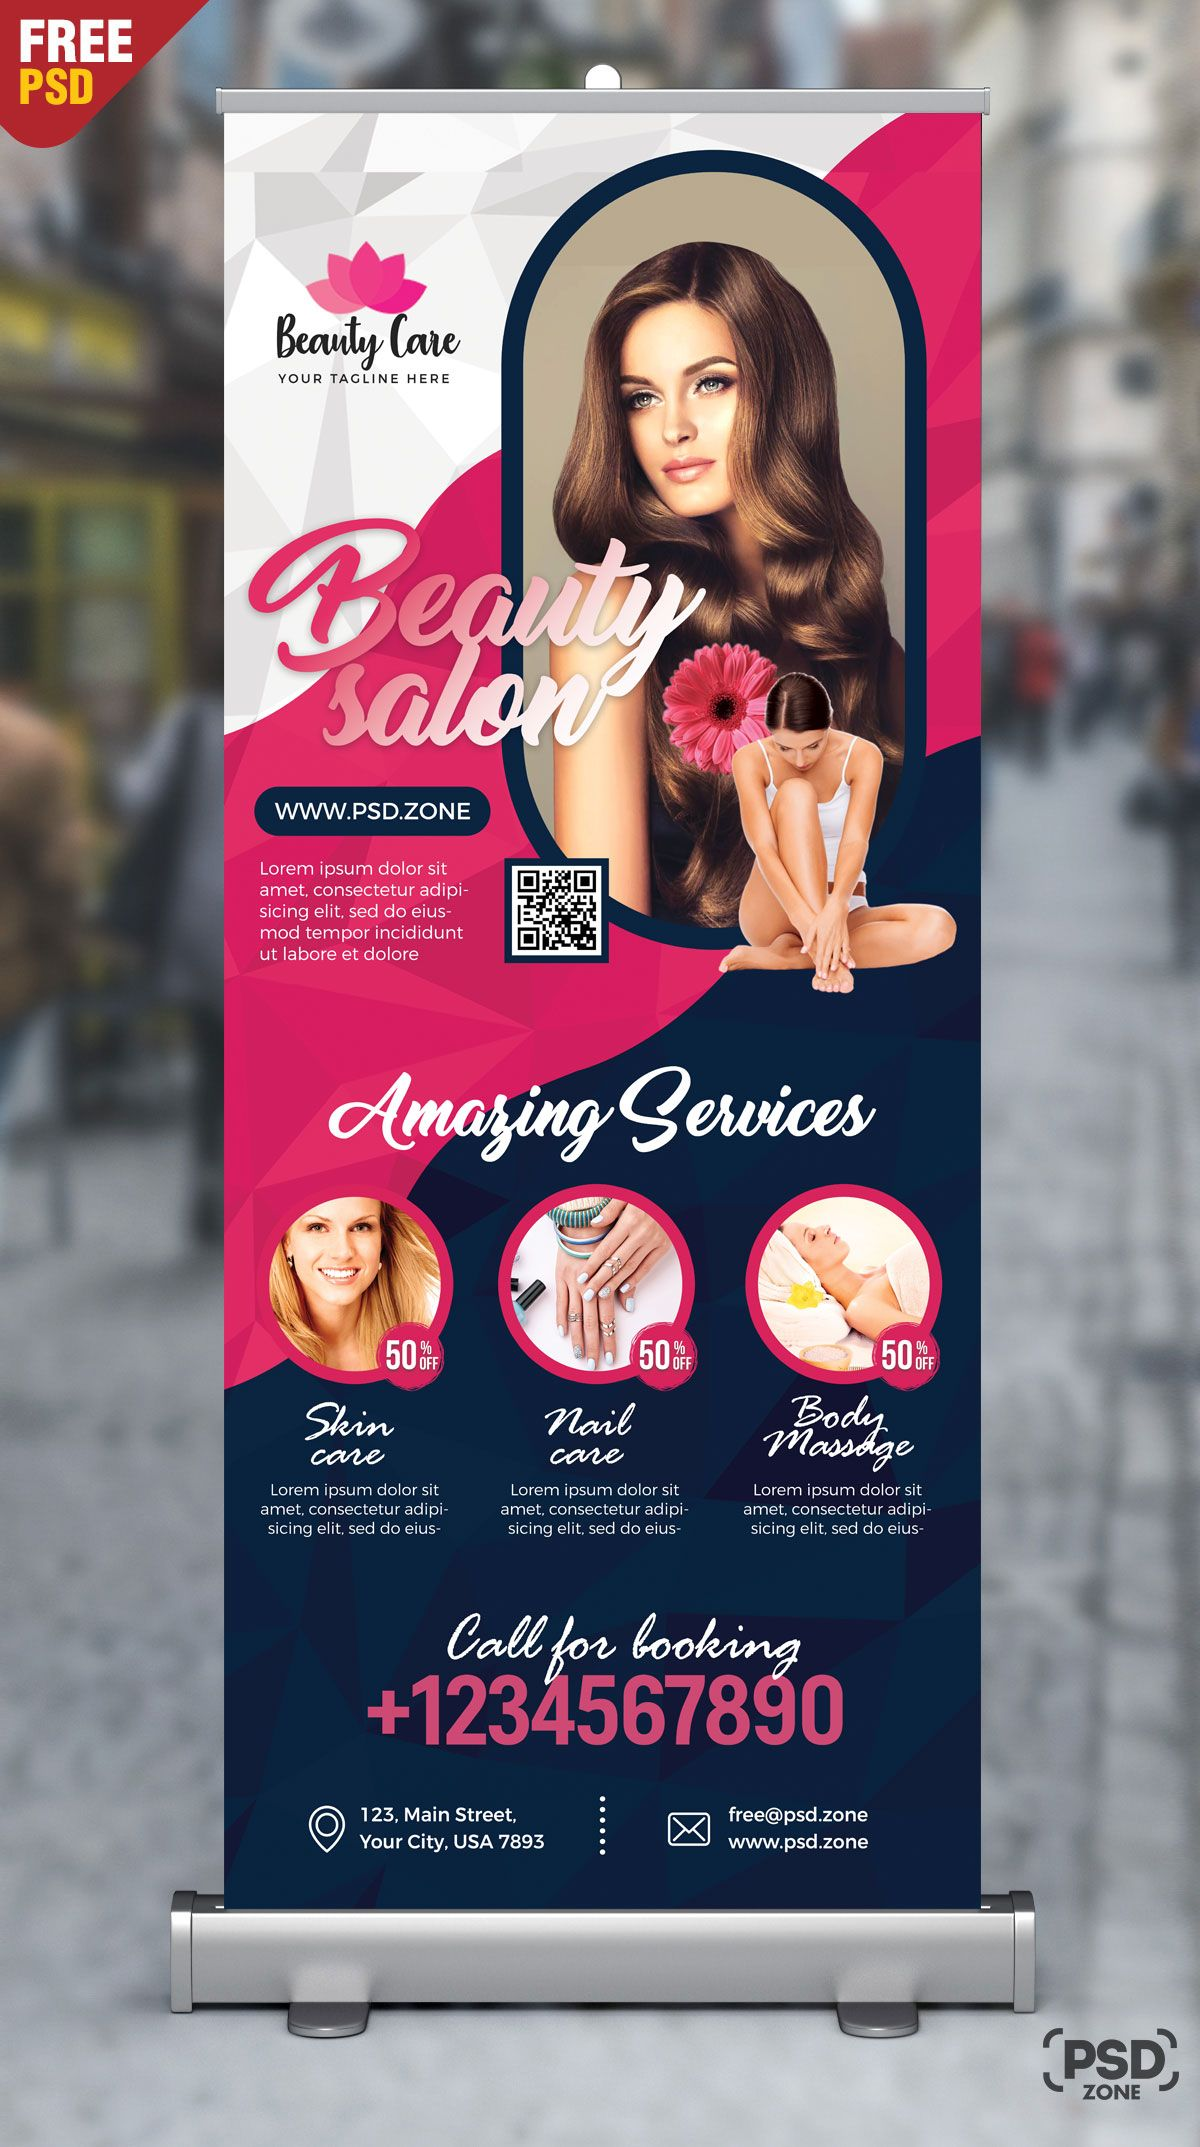 Beauty Salon Roll Up Banner Psd Psd Zone Beauty Salon Posters Beauty Salon Logo Beauty Salon